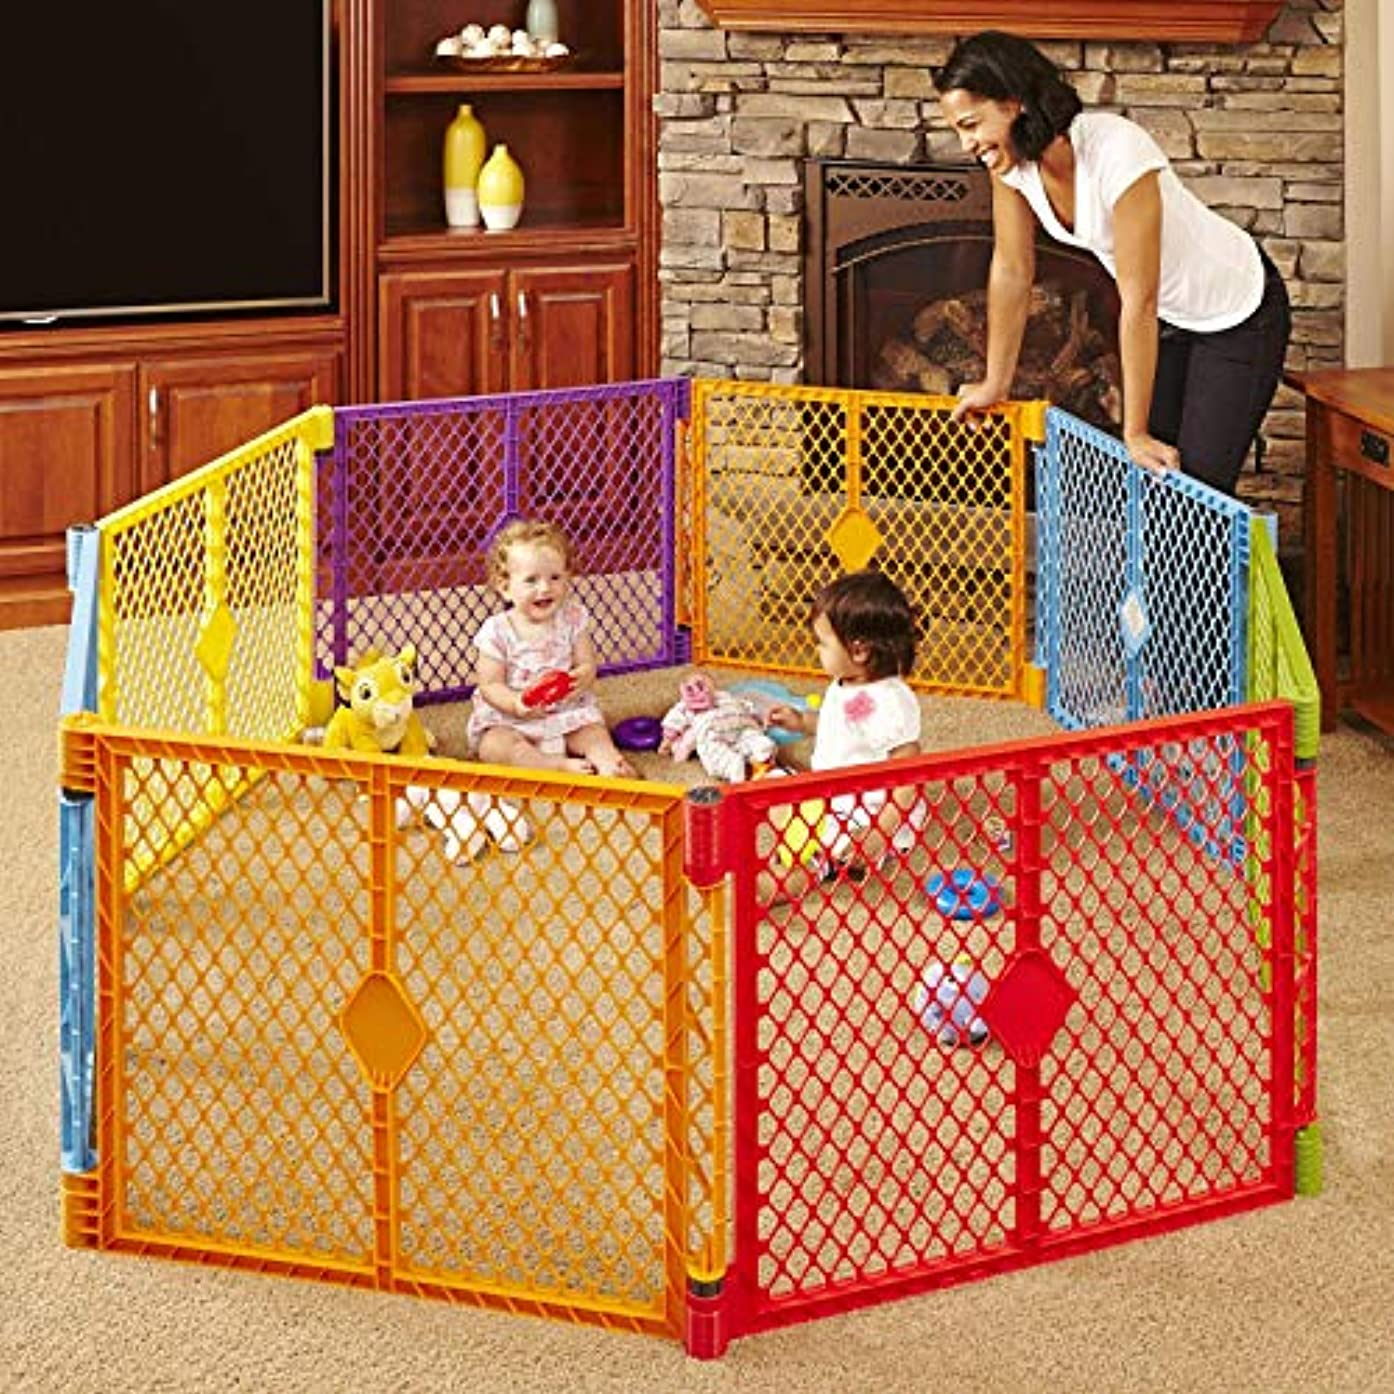 North States Superyard Colorplay 8-Panel Play Yard: Safe Play Area Anywhere - Folds with Carrying Strap for Easy Travel. Freestanding. 34.4 sq. ft. Enclosure (26